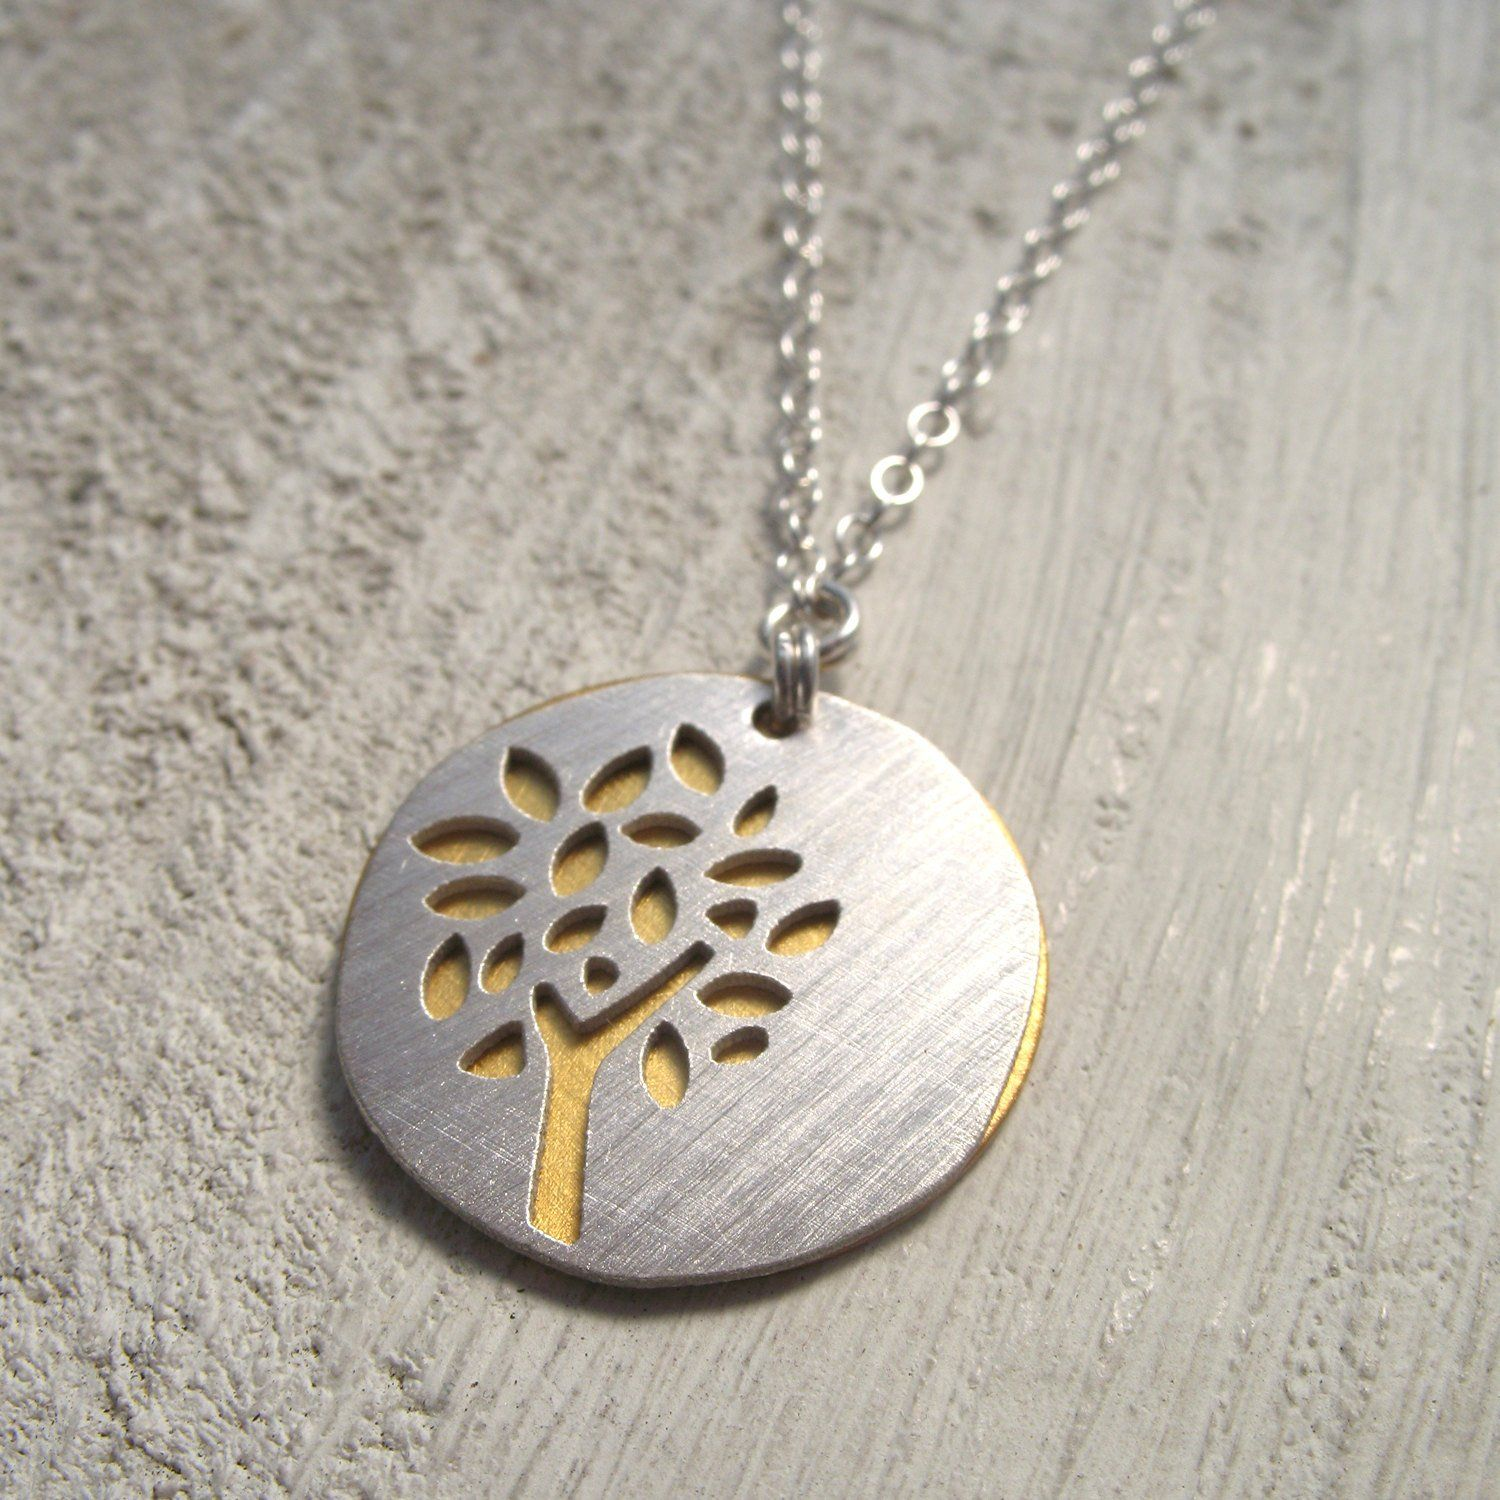 Wood and Silver Necklace West Coast Jewelry Wood Necklace Spruce Tree Mountian Jewelry Sitka Tree Tree Necklace Wooden Tree Pendant